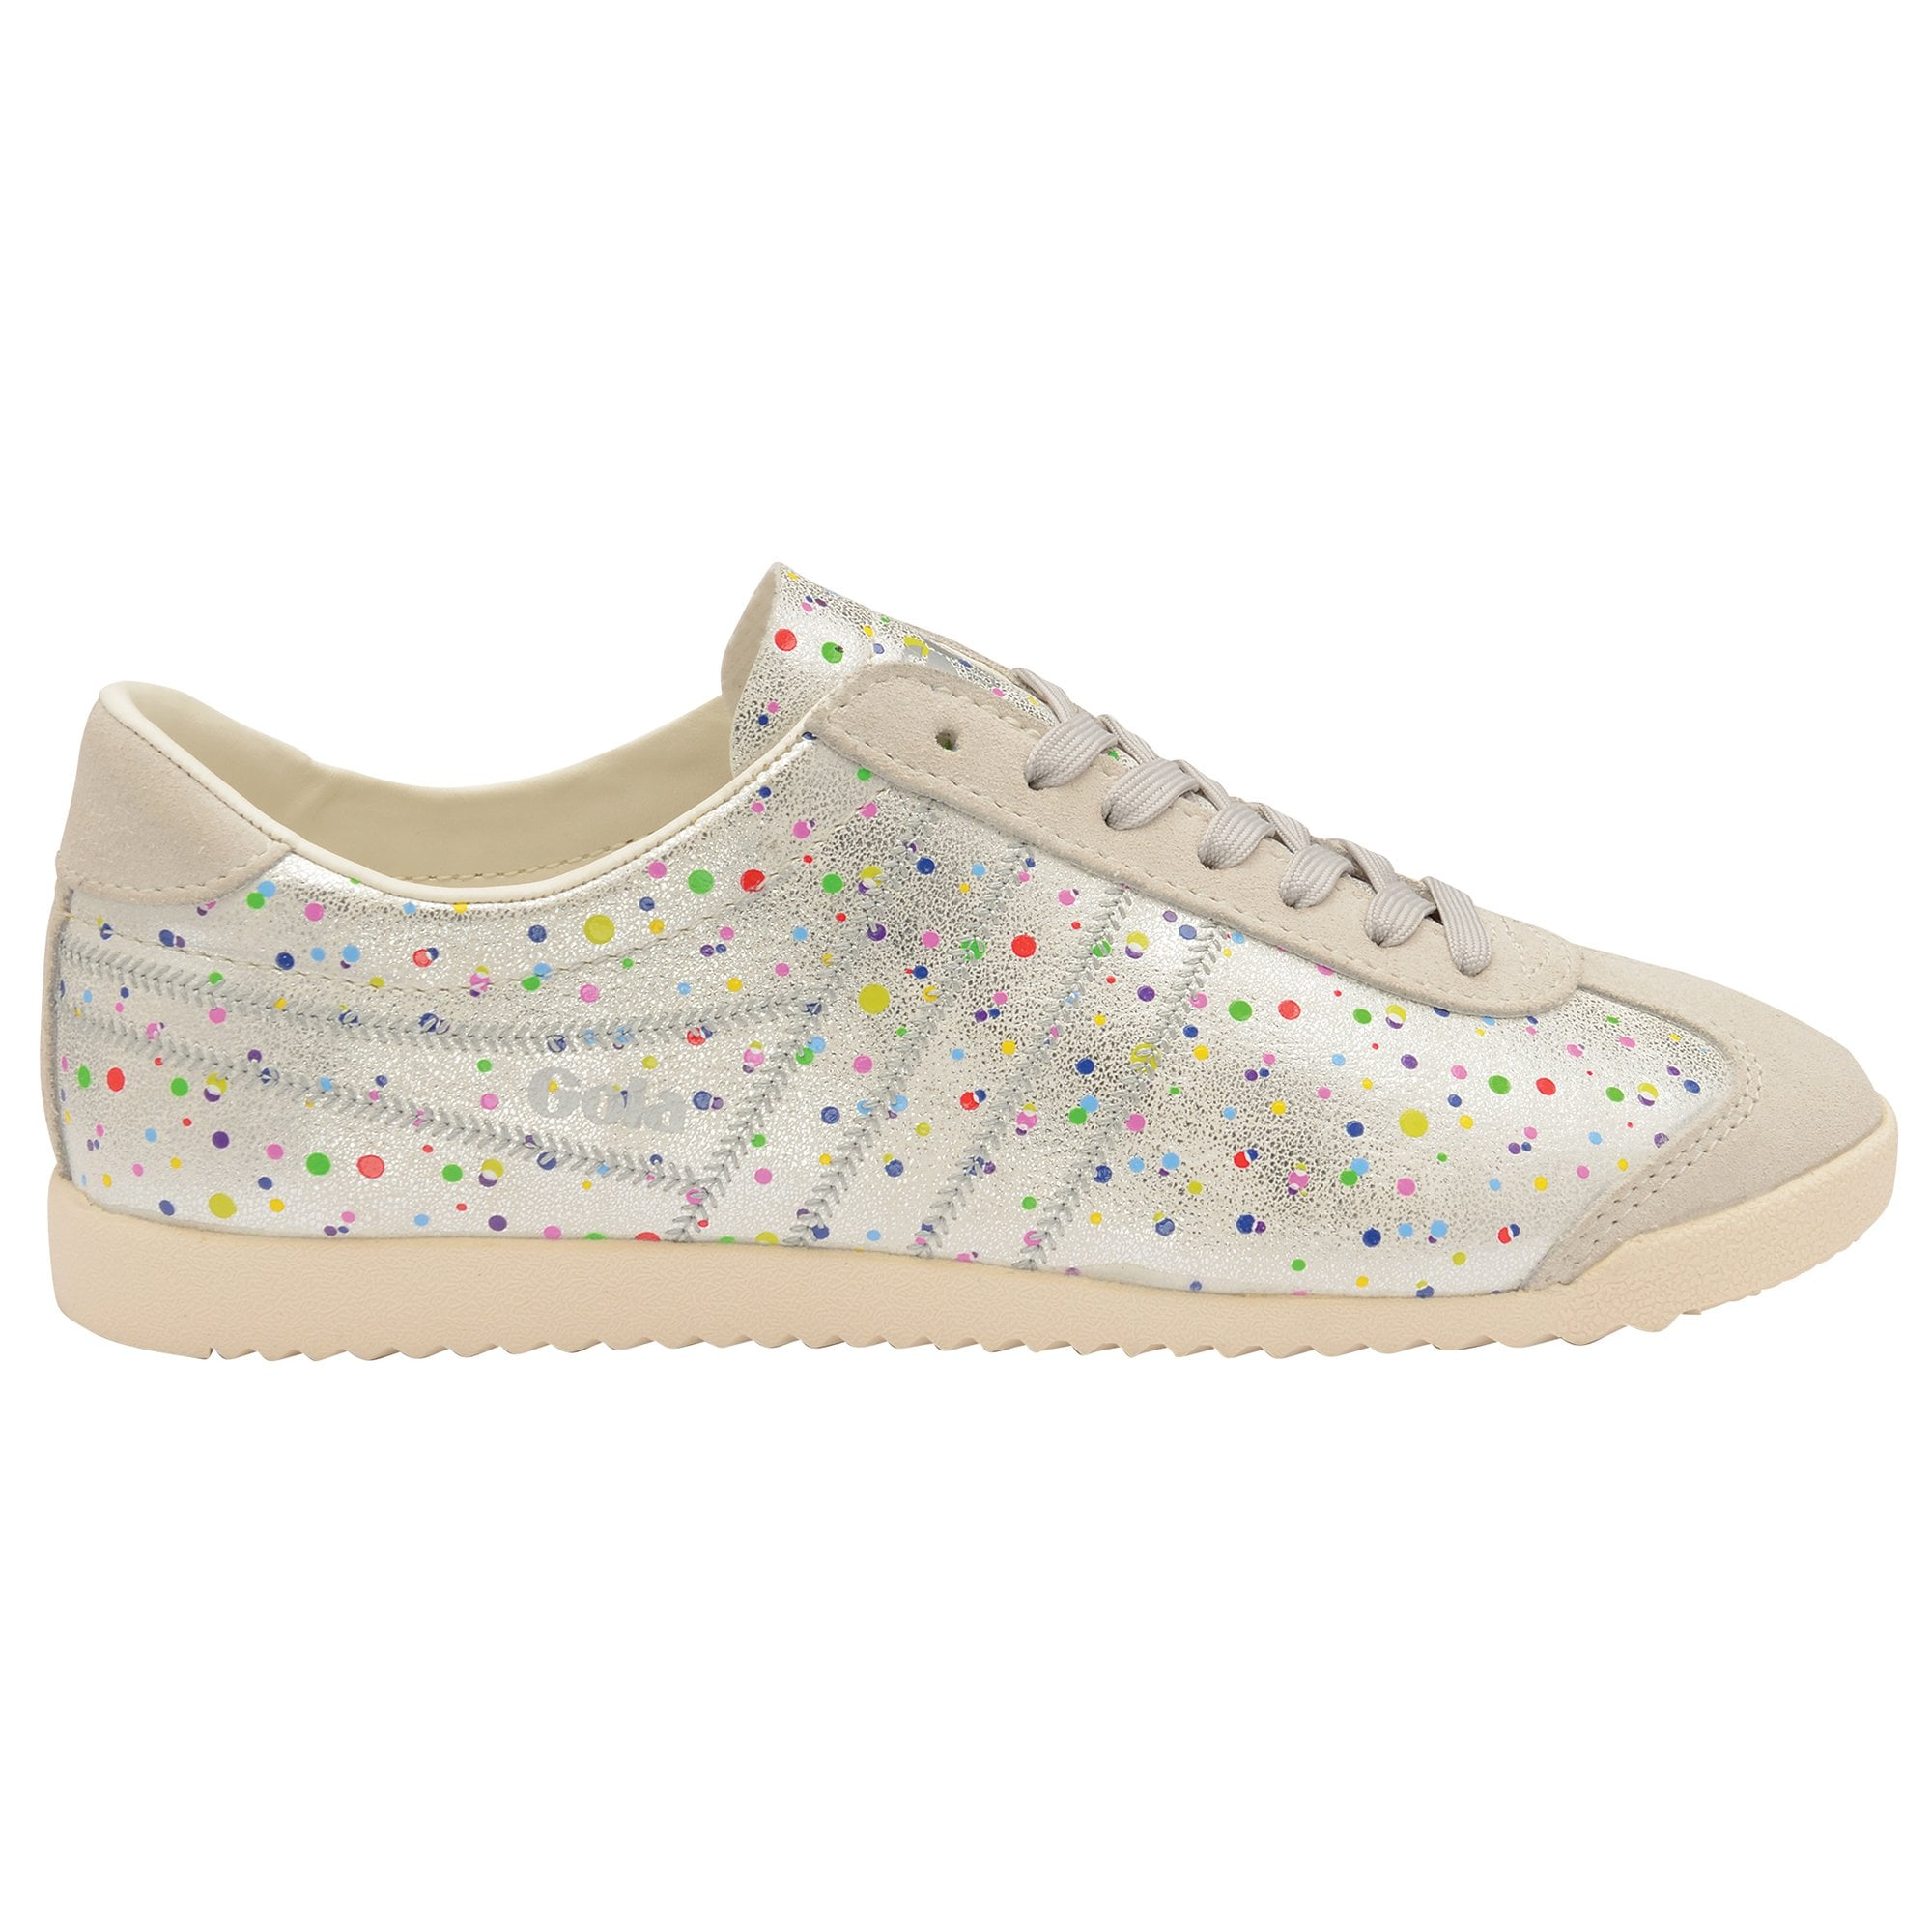 Women's Bullet Shimmer Dot Trainer